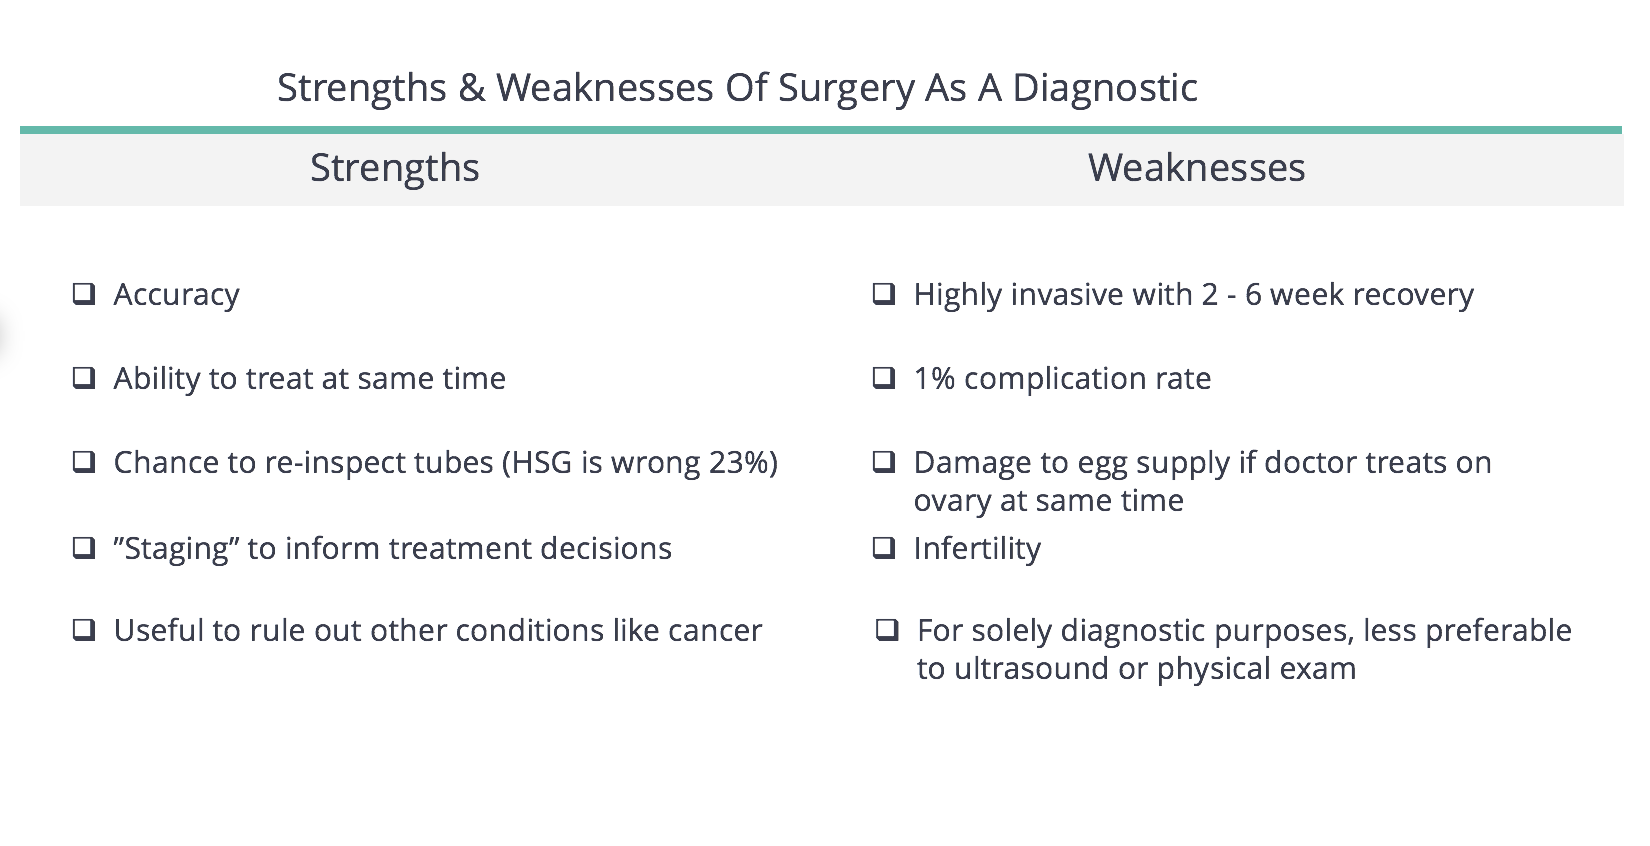 Strengths & Weaknesses of surgery as a diagnostic for endometriosis